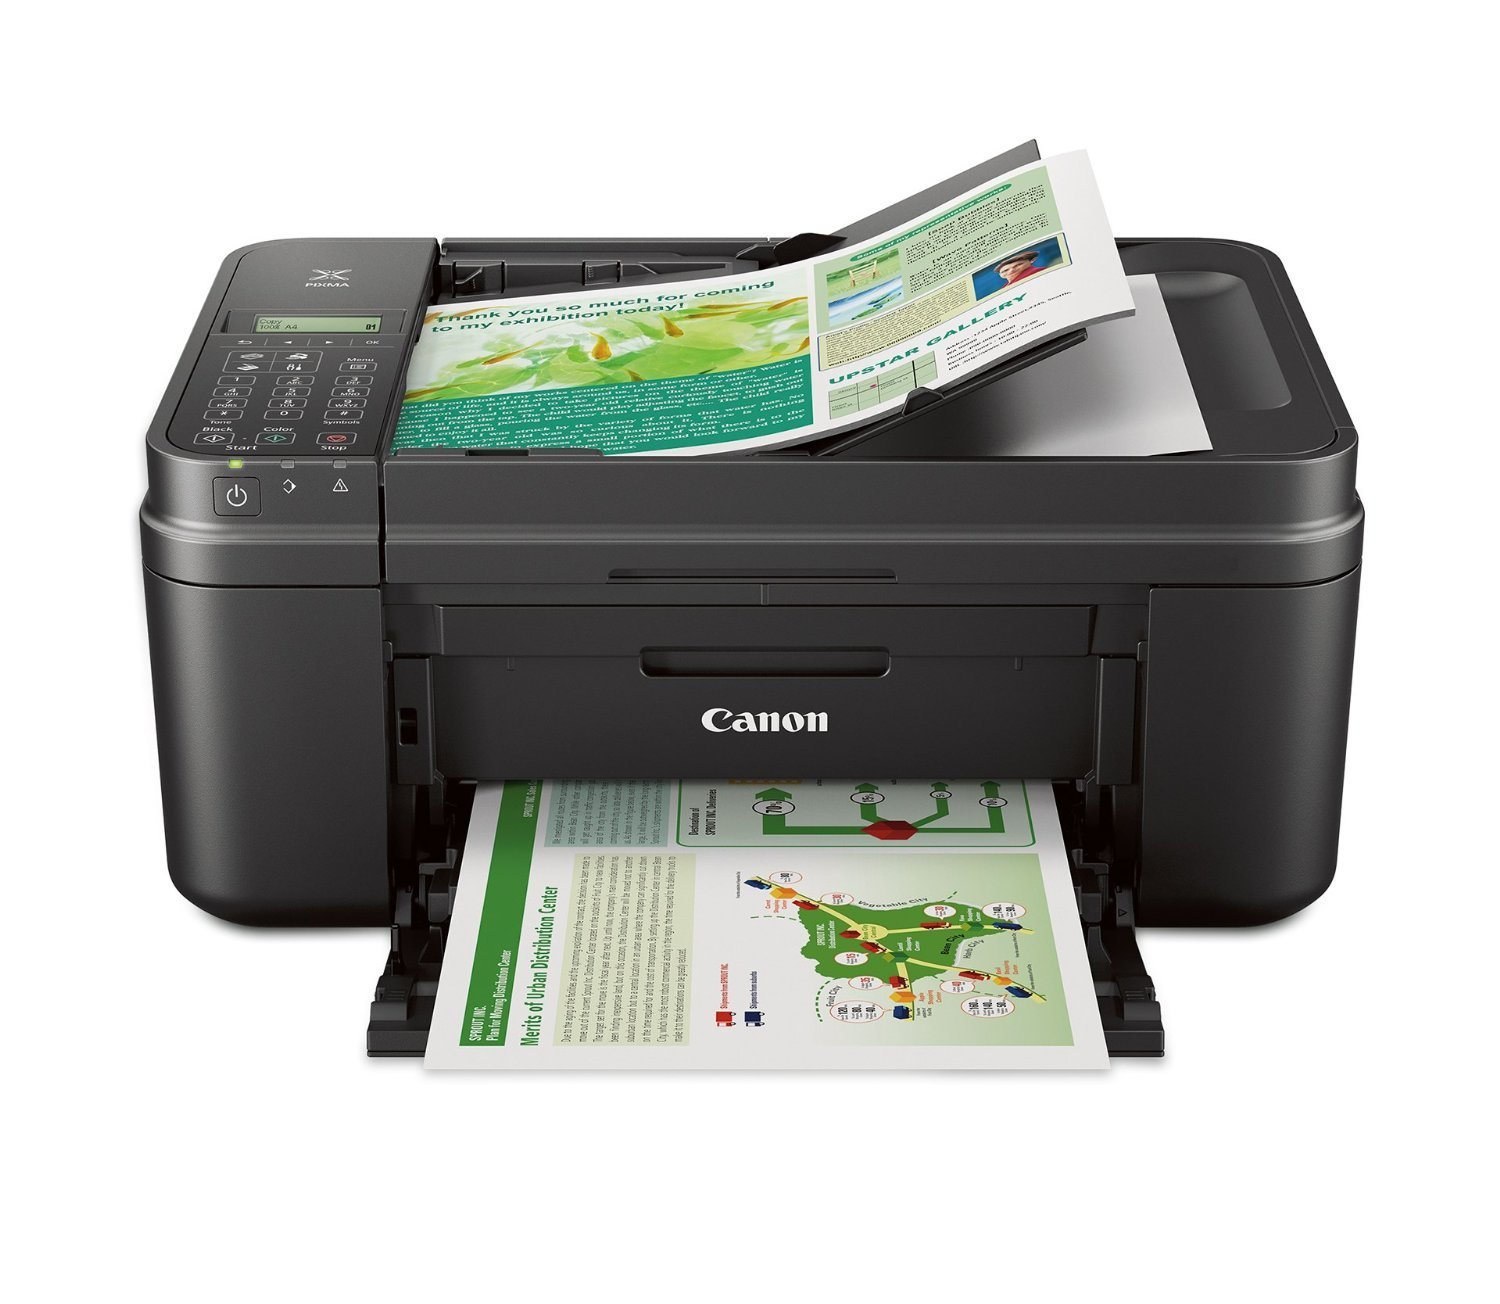 Printer Canon MX490 Driver for Linux Mint 19.x Tara/Tessa/Tina/Tricia How to Download and Install - Featured